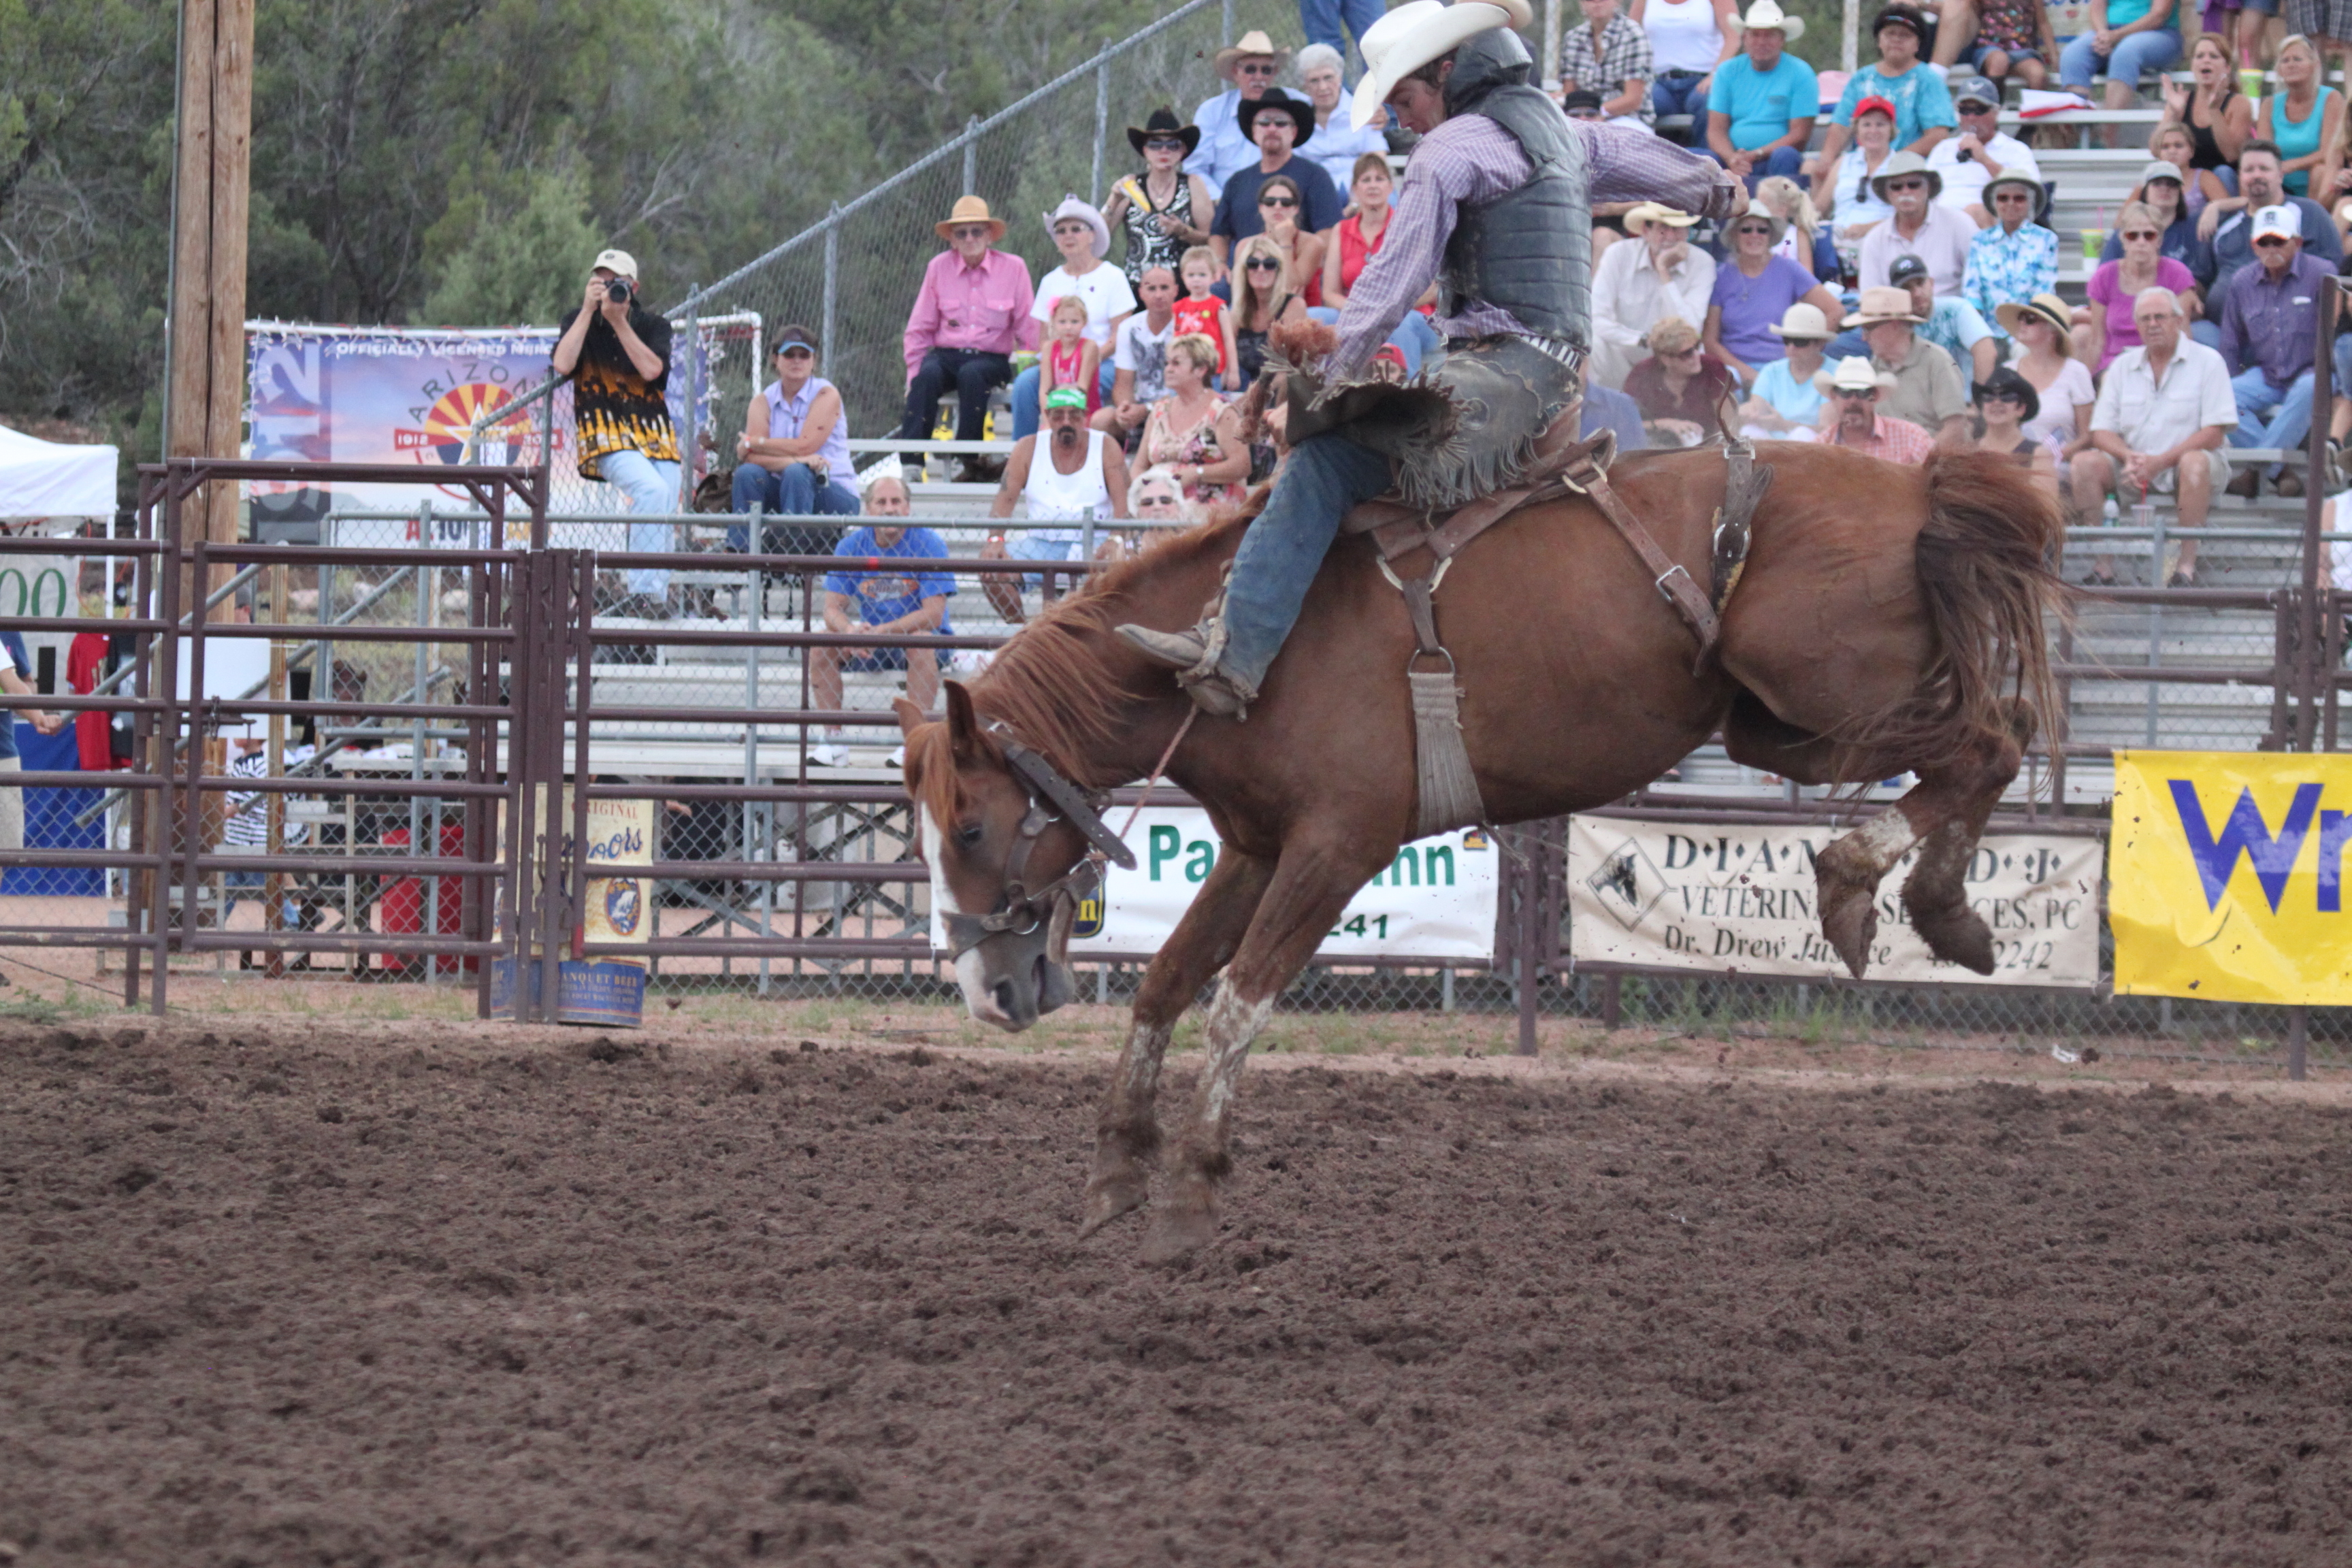 Payson_Rodeo_20031.JPG